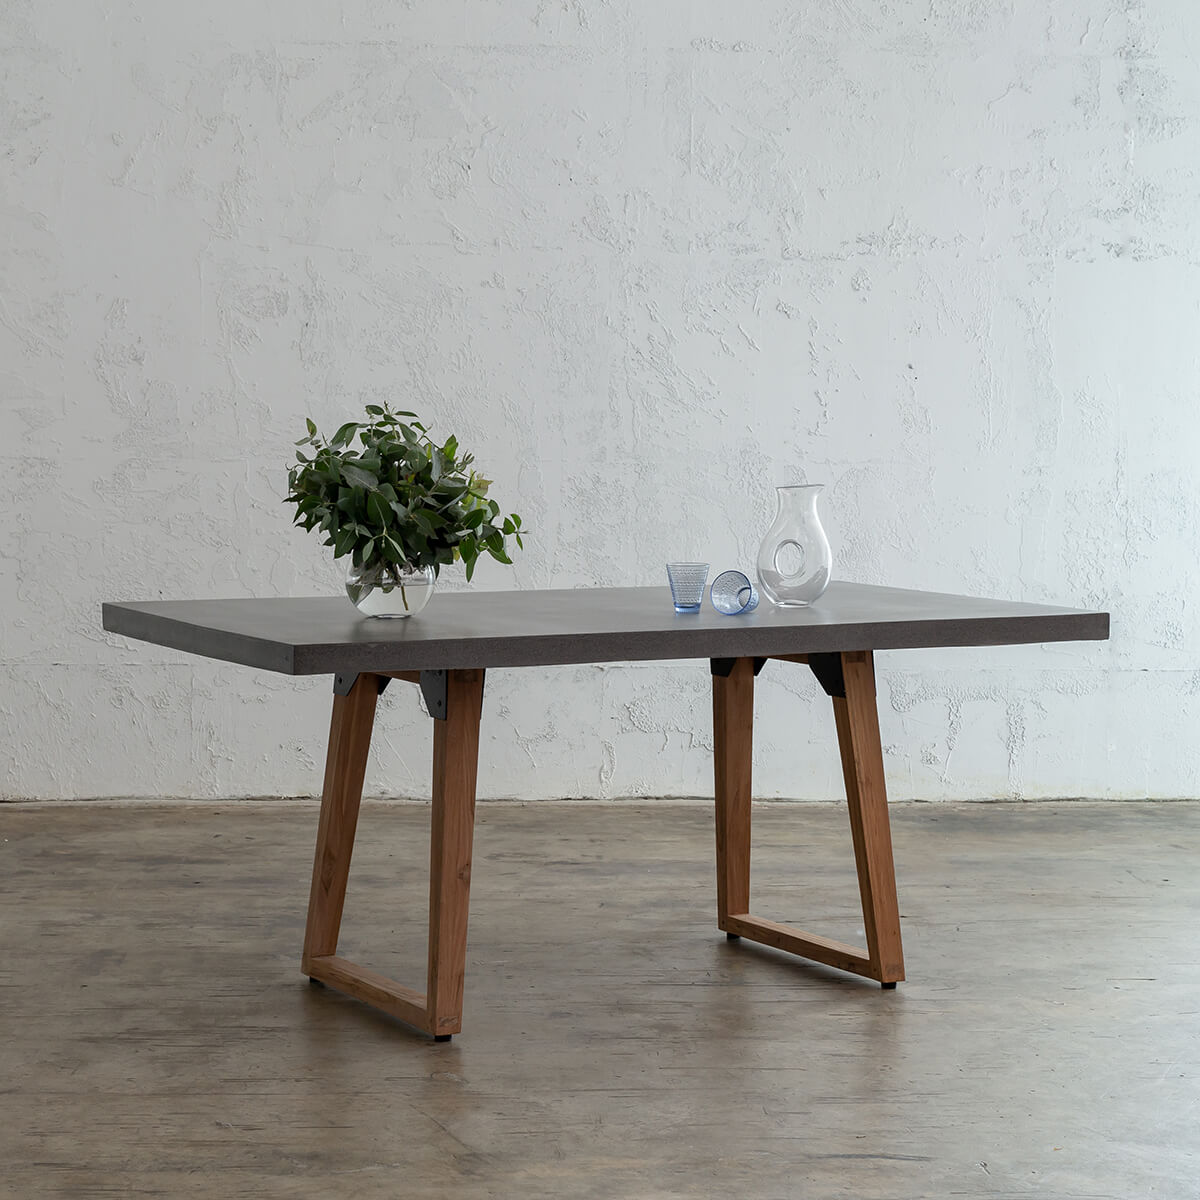 ARIA CONCRETE GRANITE TOP DINING TABLE  | INDOOR + OUTDOOR DINING TABLE  |  OUTDOOR FURNITURE